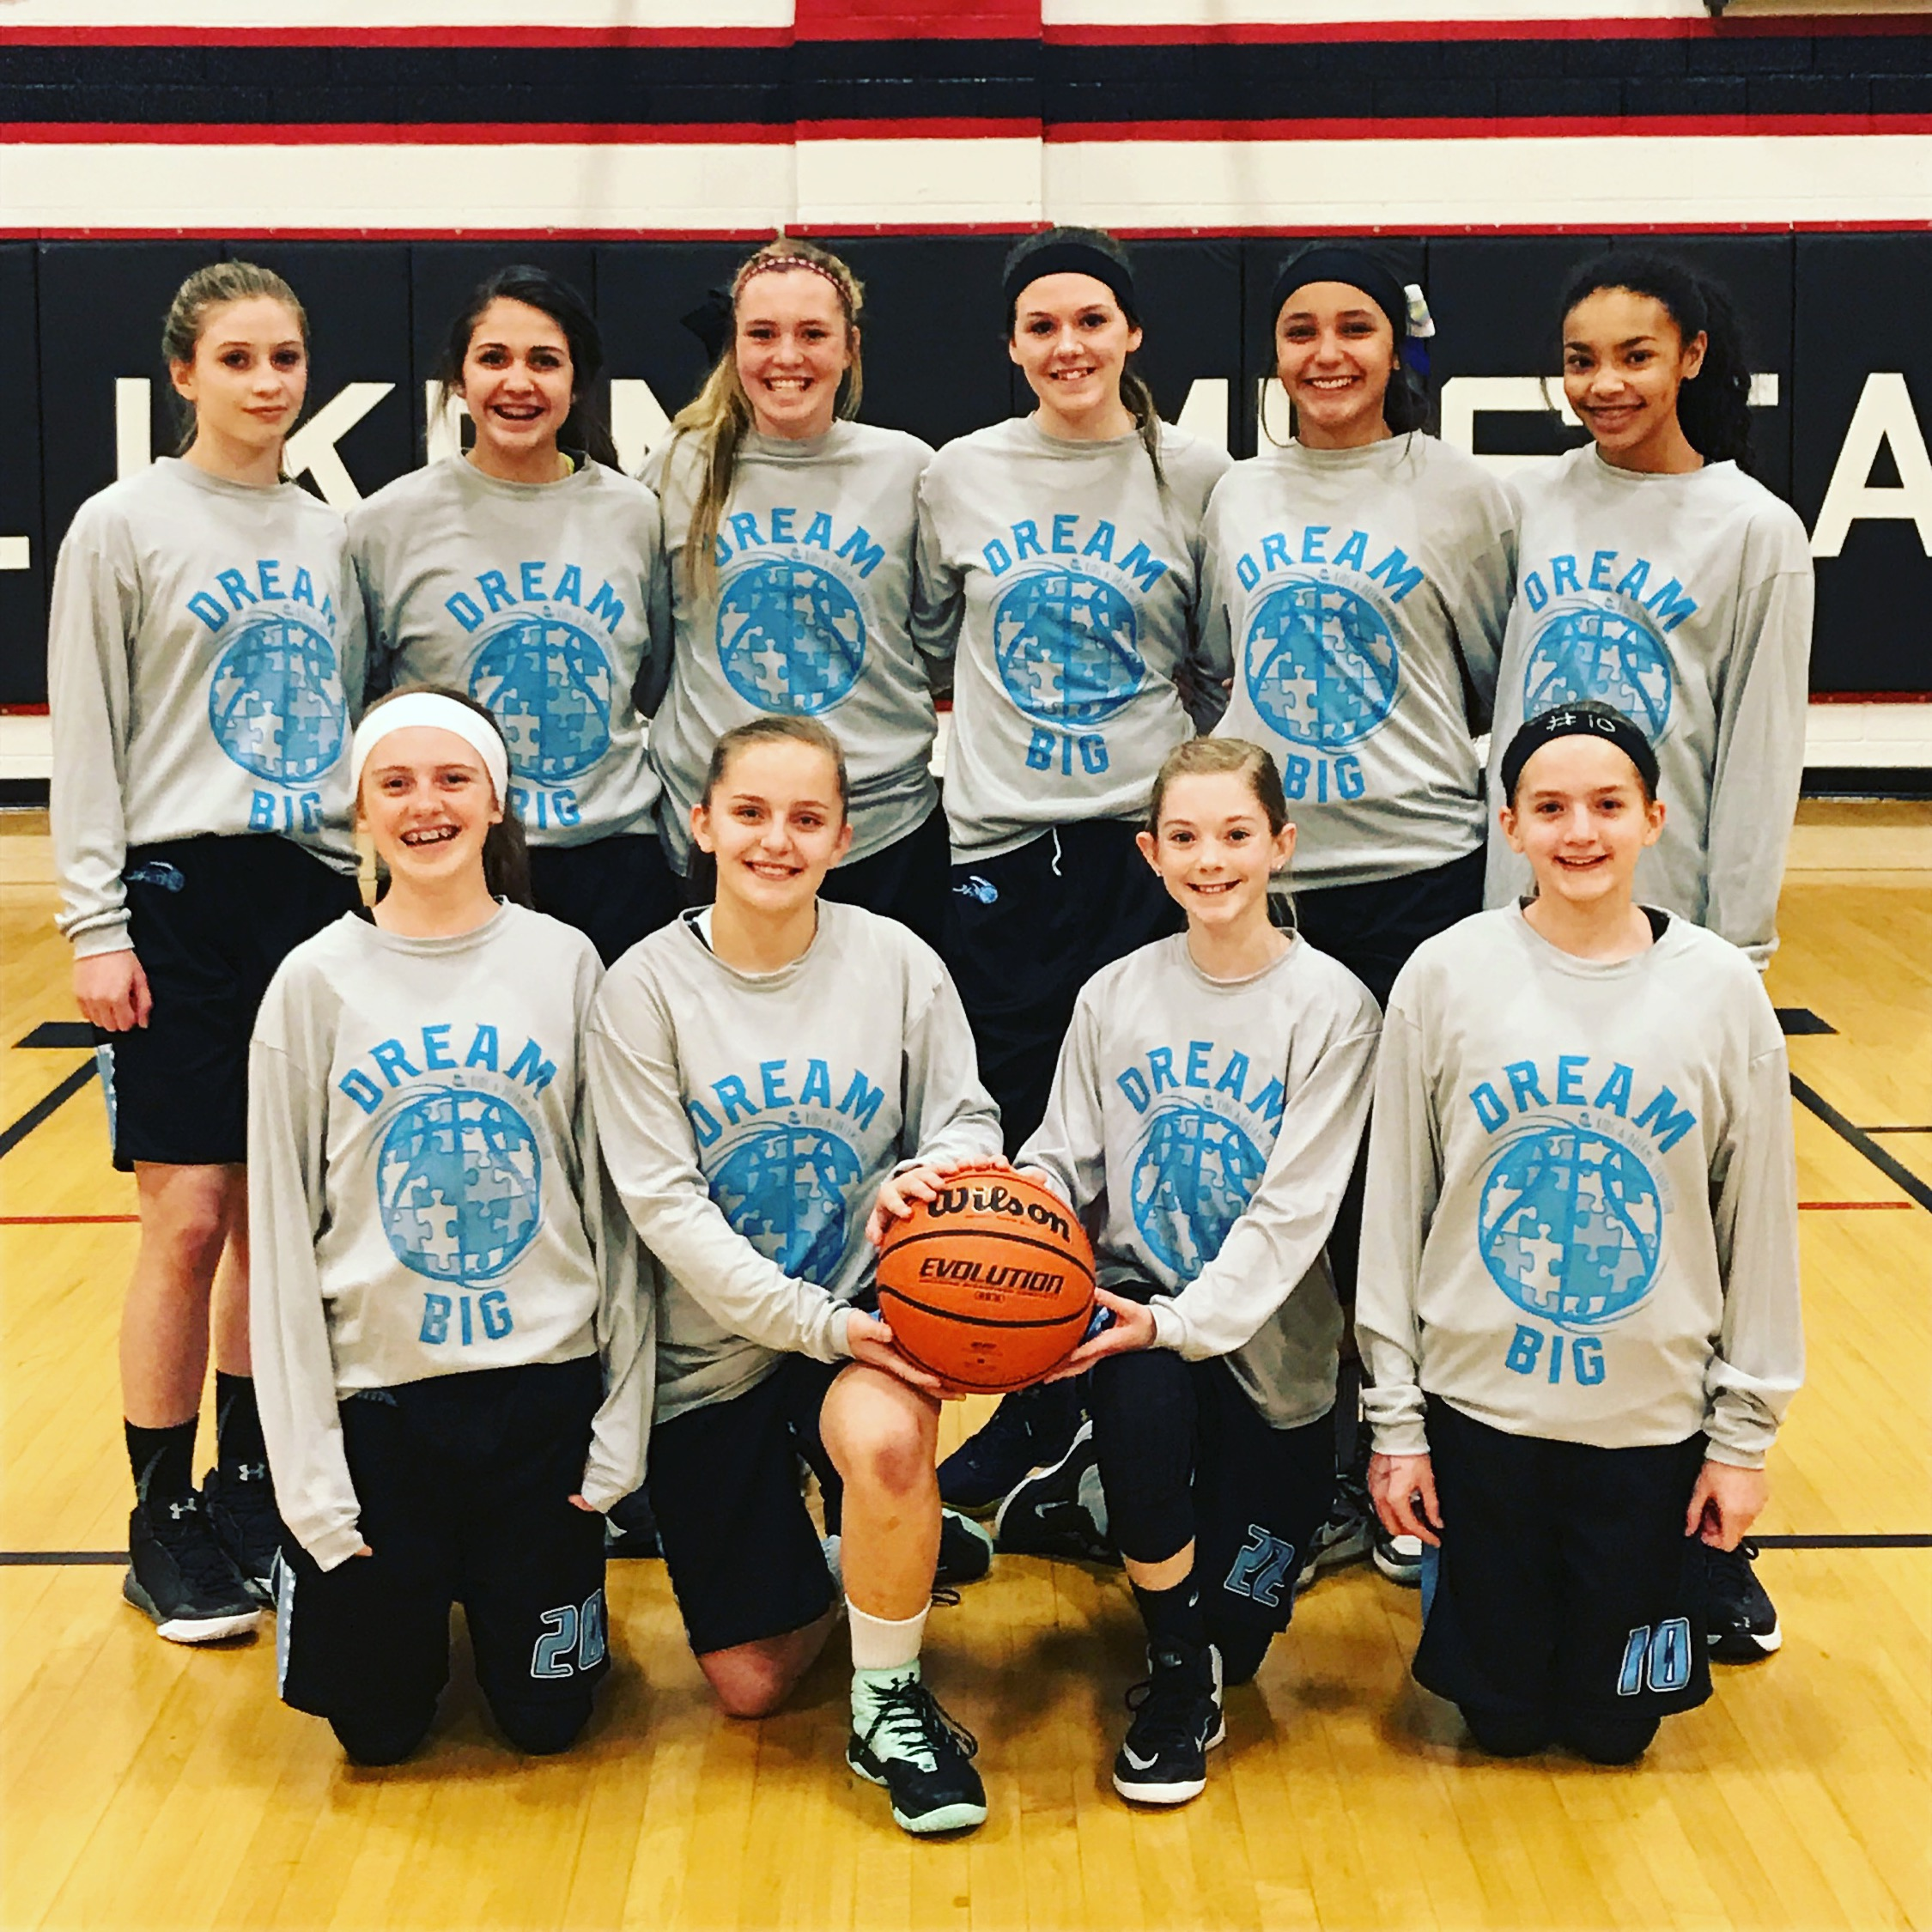 The Colorado Jam travel team helped us spread awareness in their state this past year during their tournaments!! Very thankful for their support and wearing our Dream Big shirts.